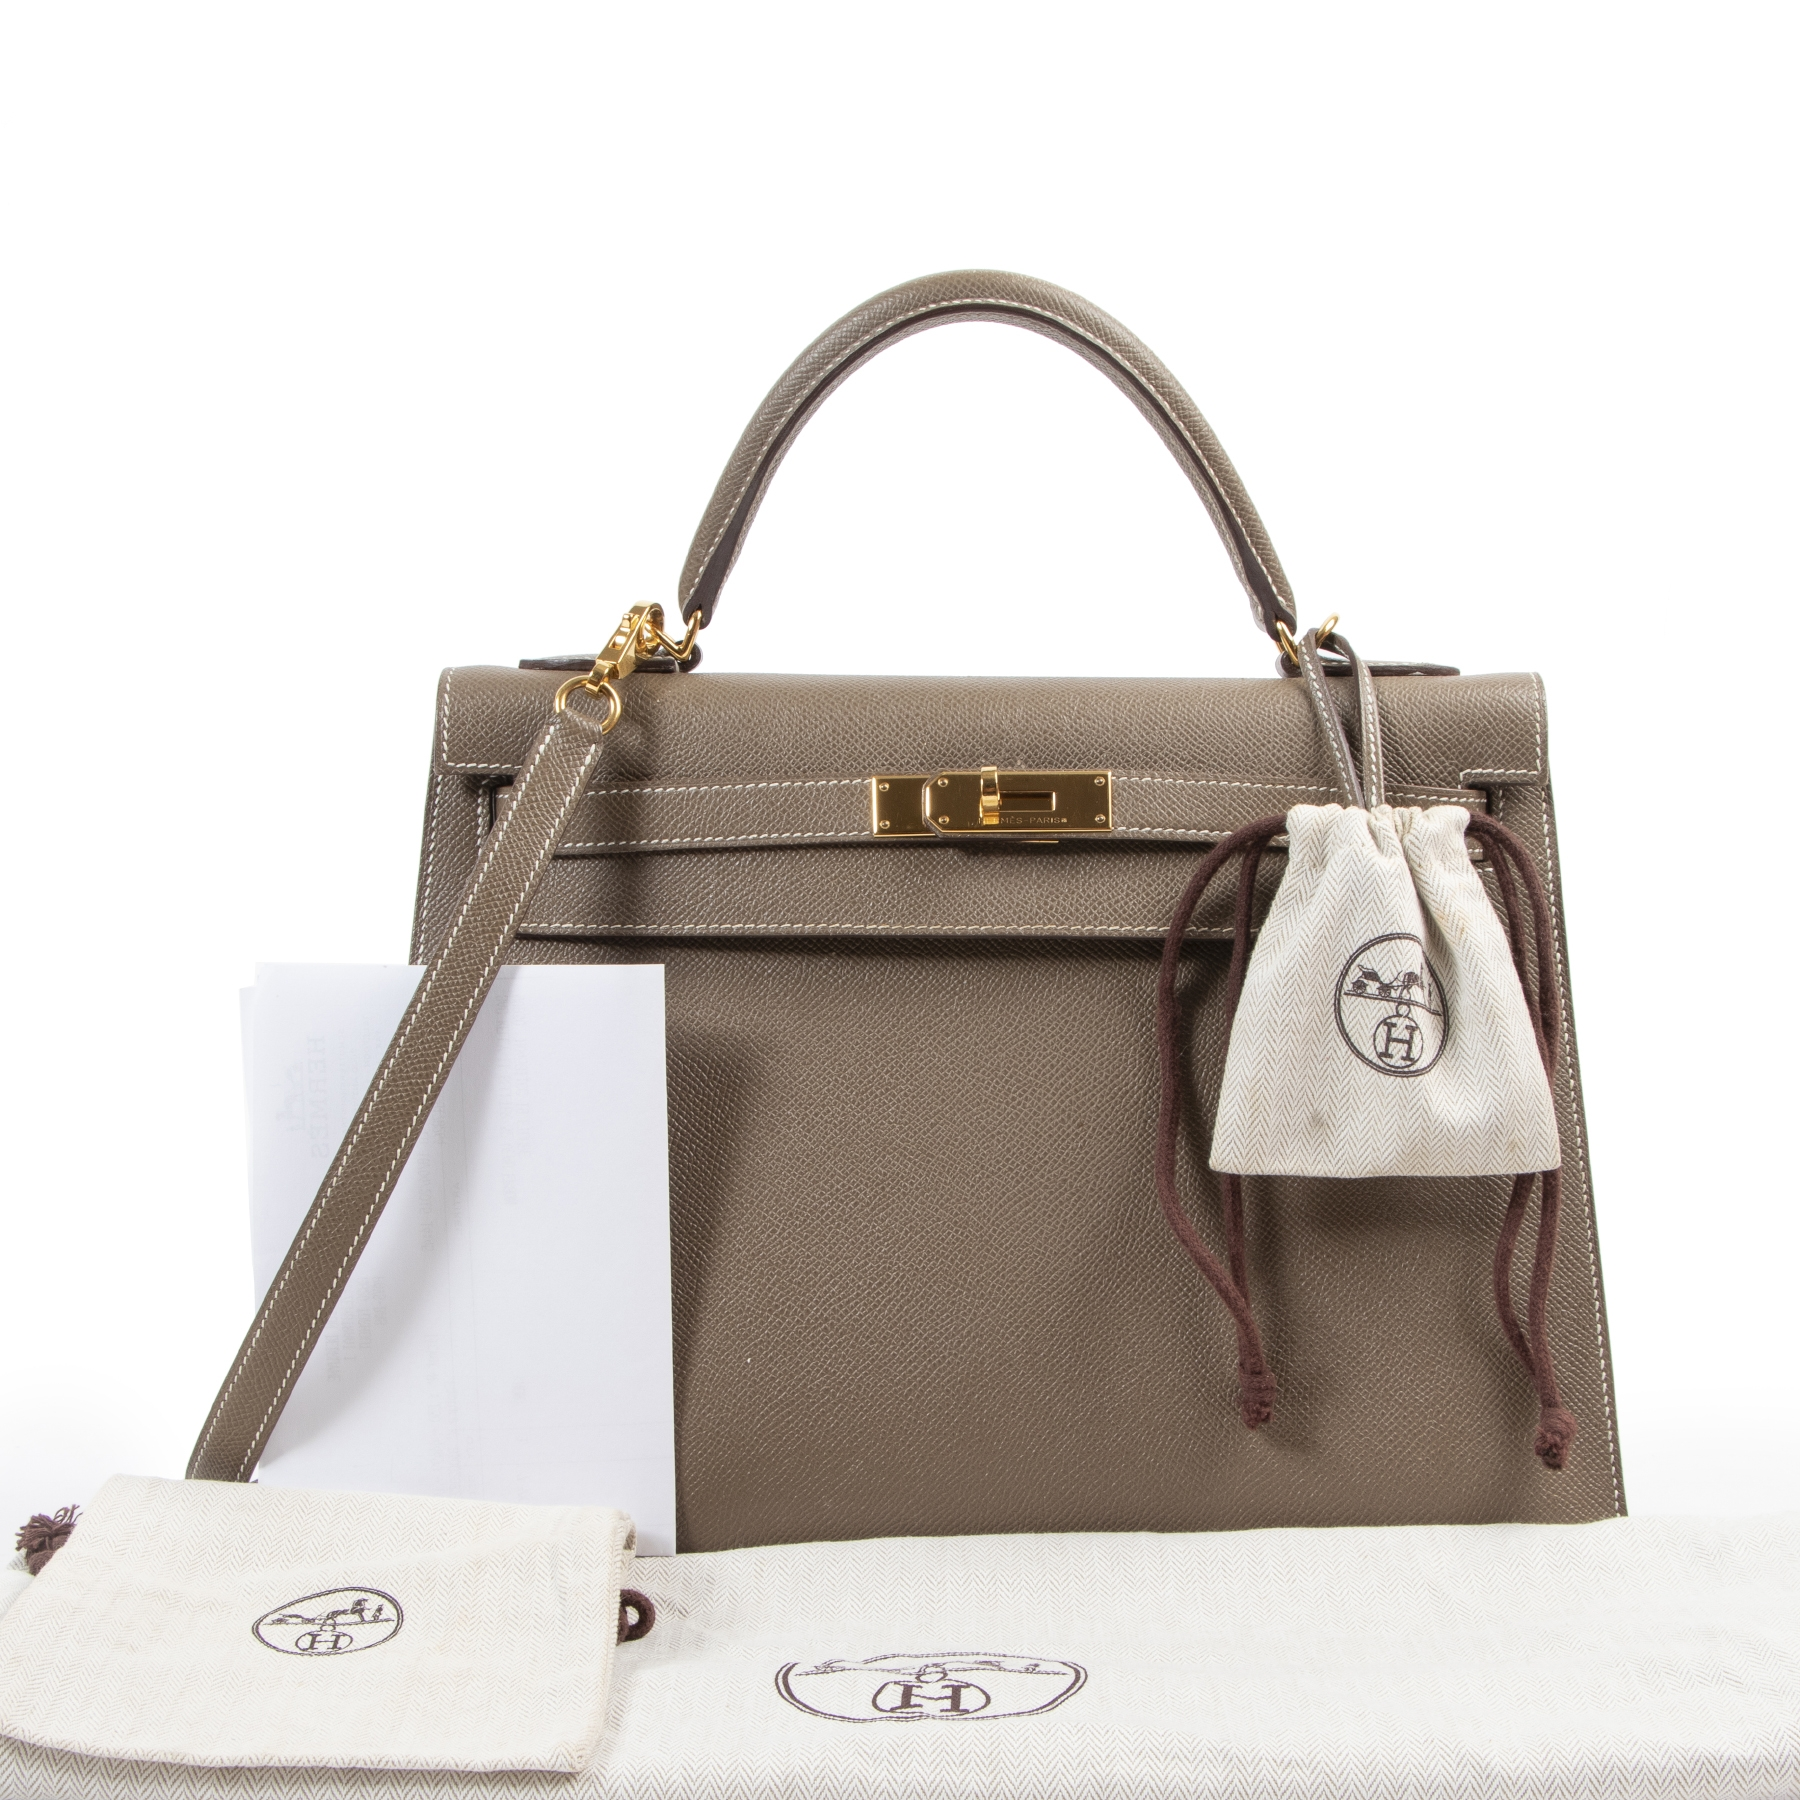 Buy and sell your preloved and brand new designer bags online at Labellov